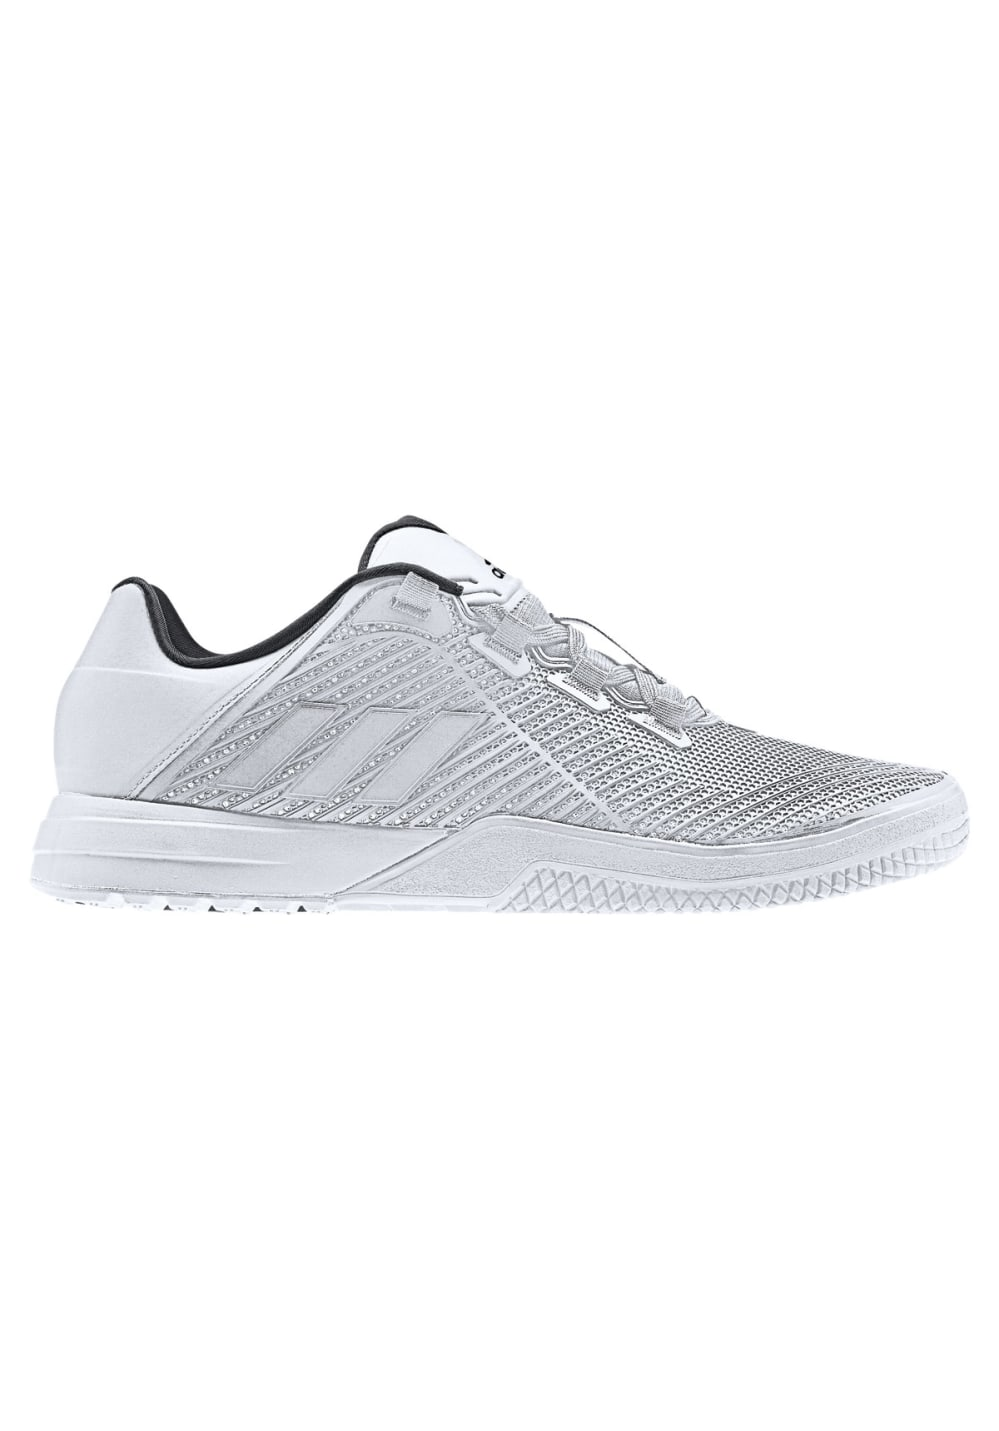 Adidas Homme Chaussures Crazypower Blanc Fitness Pour Trainer xWdQroeCB